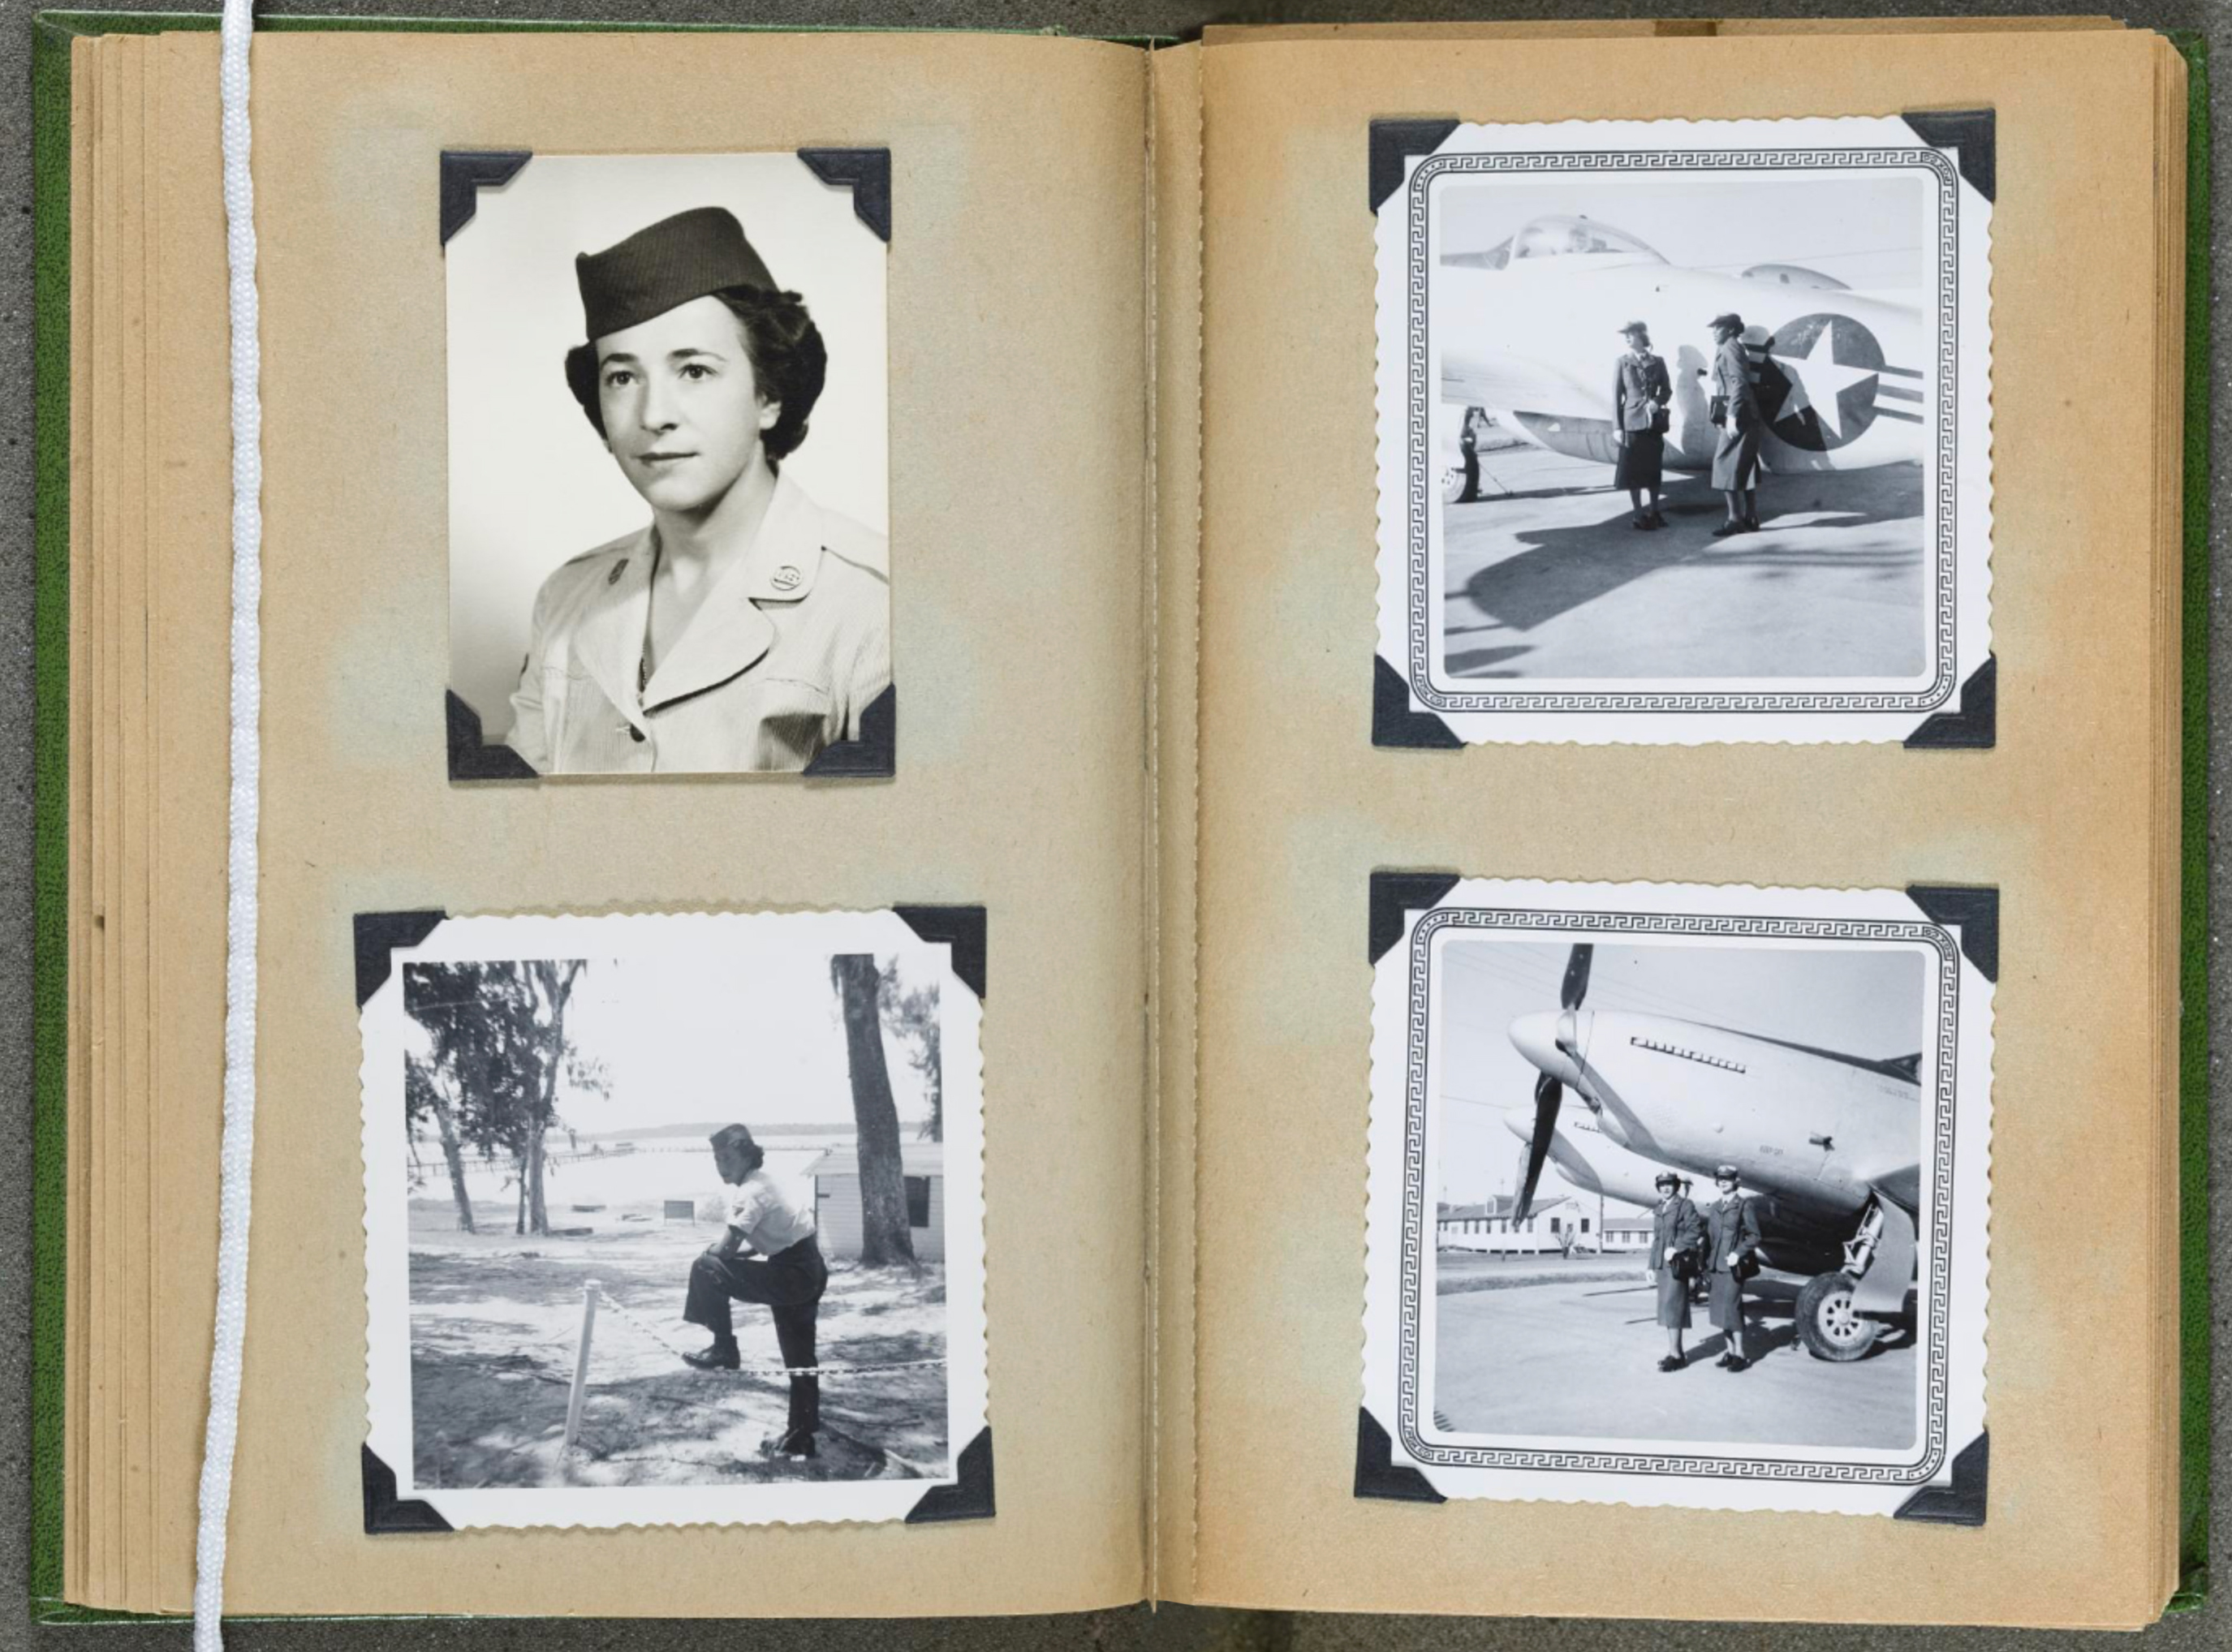 Helen James brought her photo album from her military days to the National Air and Space Museum.